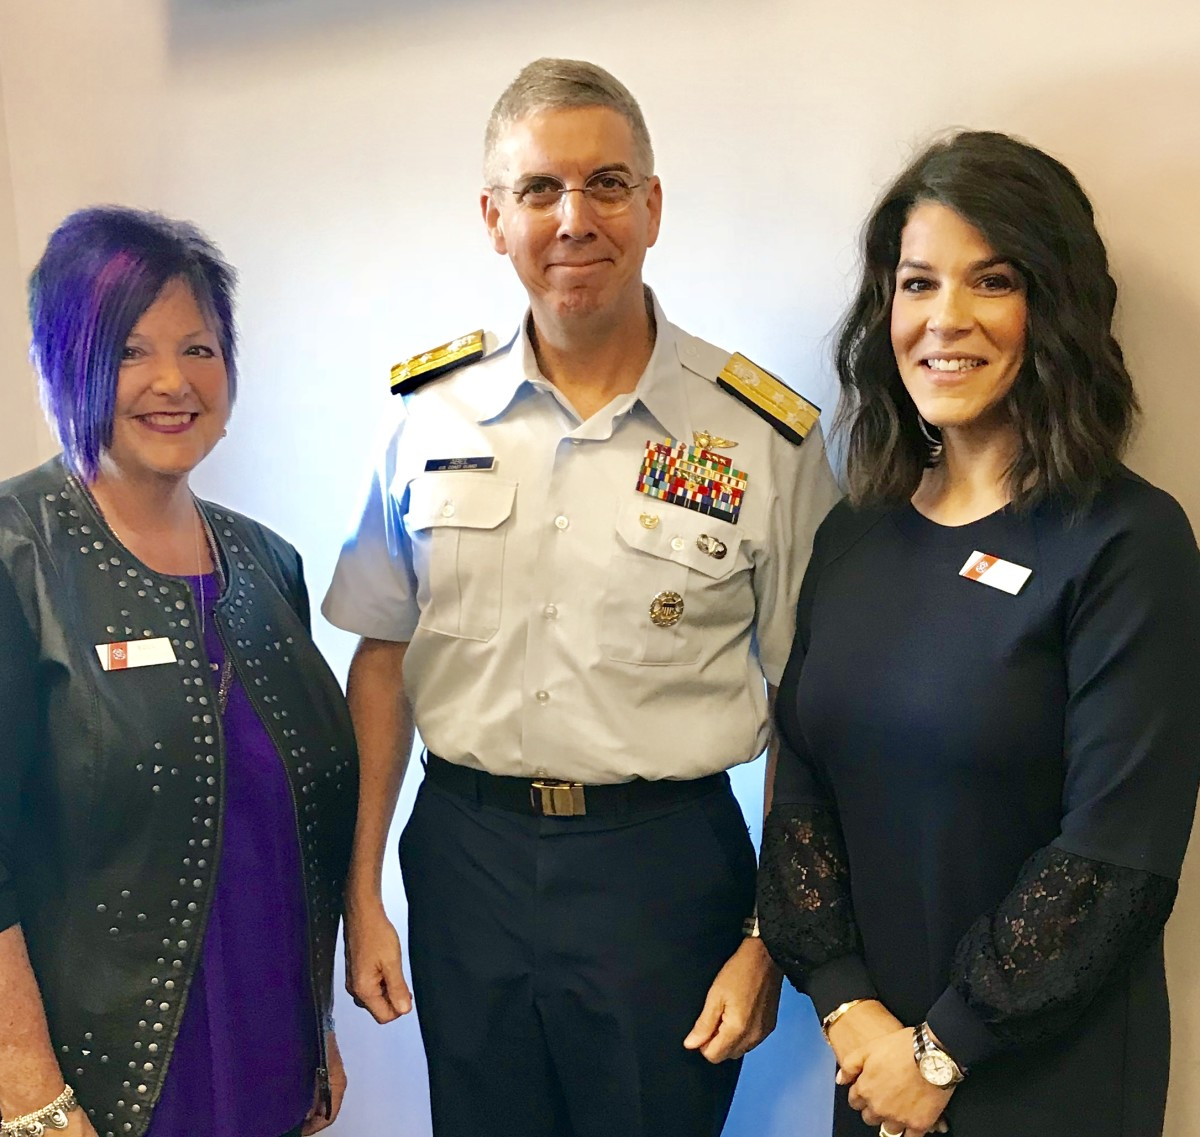 Nicole Vasilaros (right) with Coast Guard Vice Adm. Dan Abel and Wanda Kenton Smith, a member of the National Boating Safety Advisory Council.